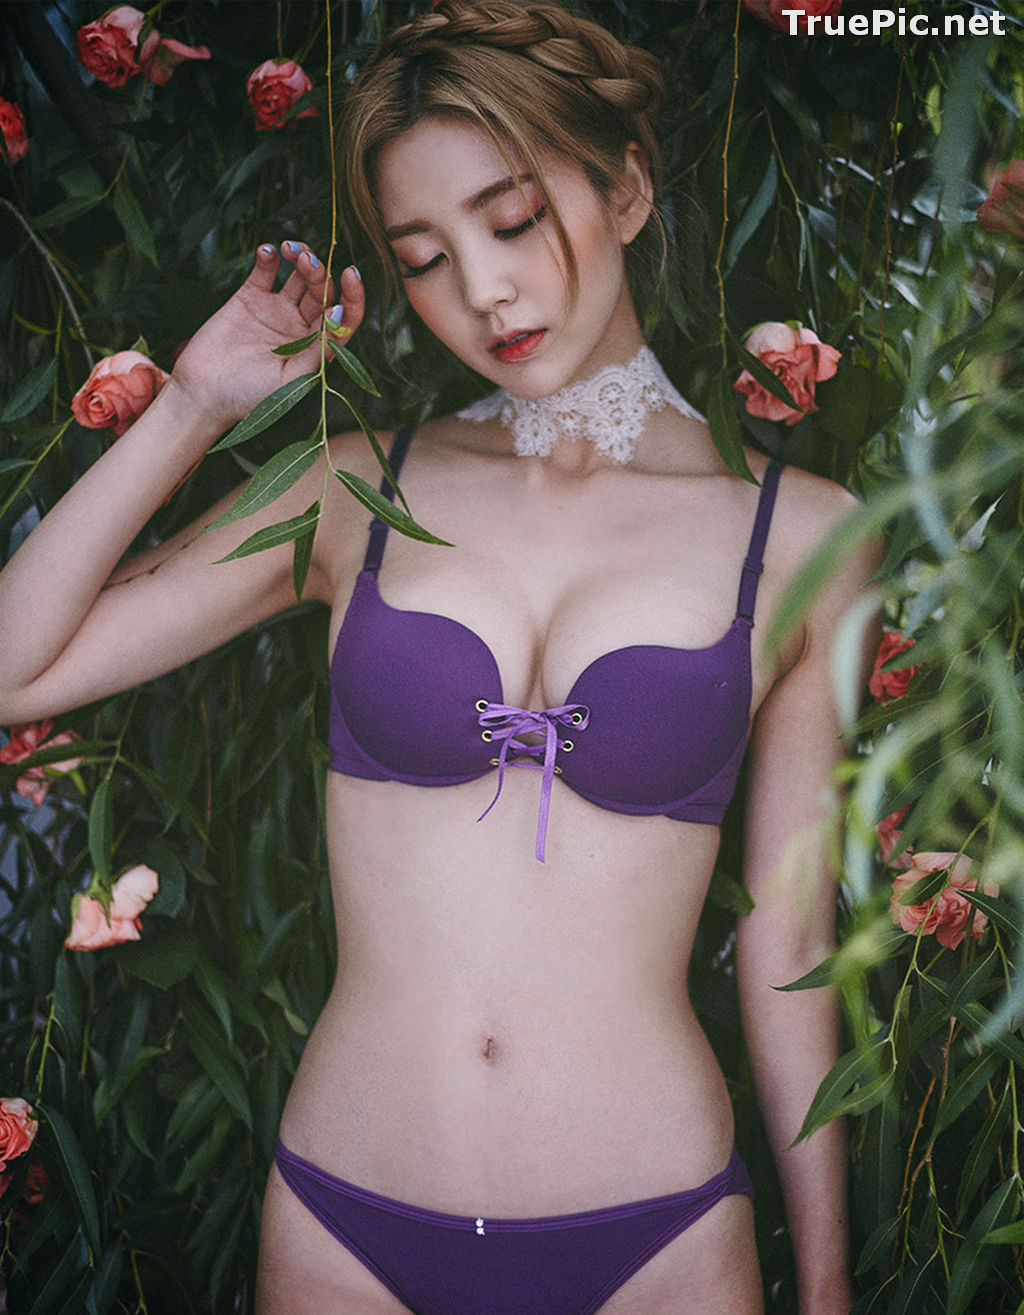 Image Lee Chae Eun - Korean Fashion Model - Purple Lingerie Set - TruePic.net - Picture-5